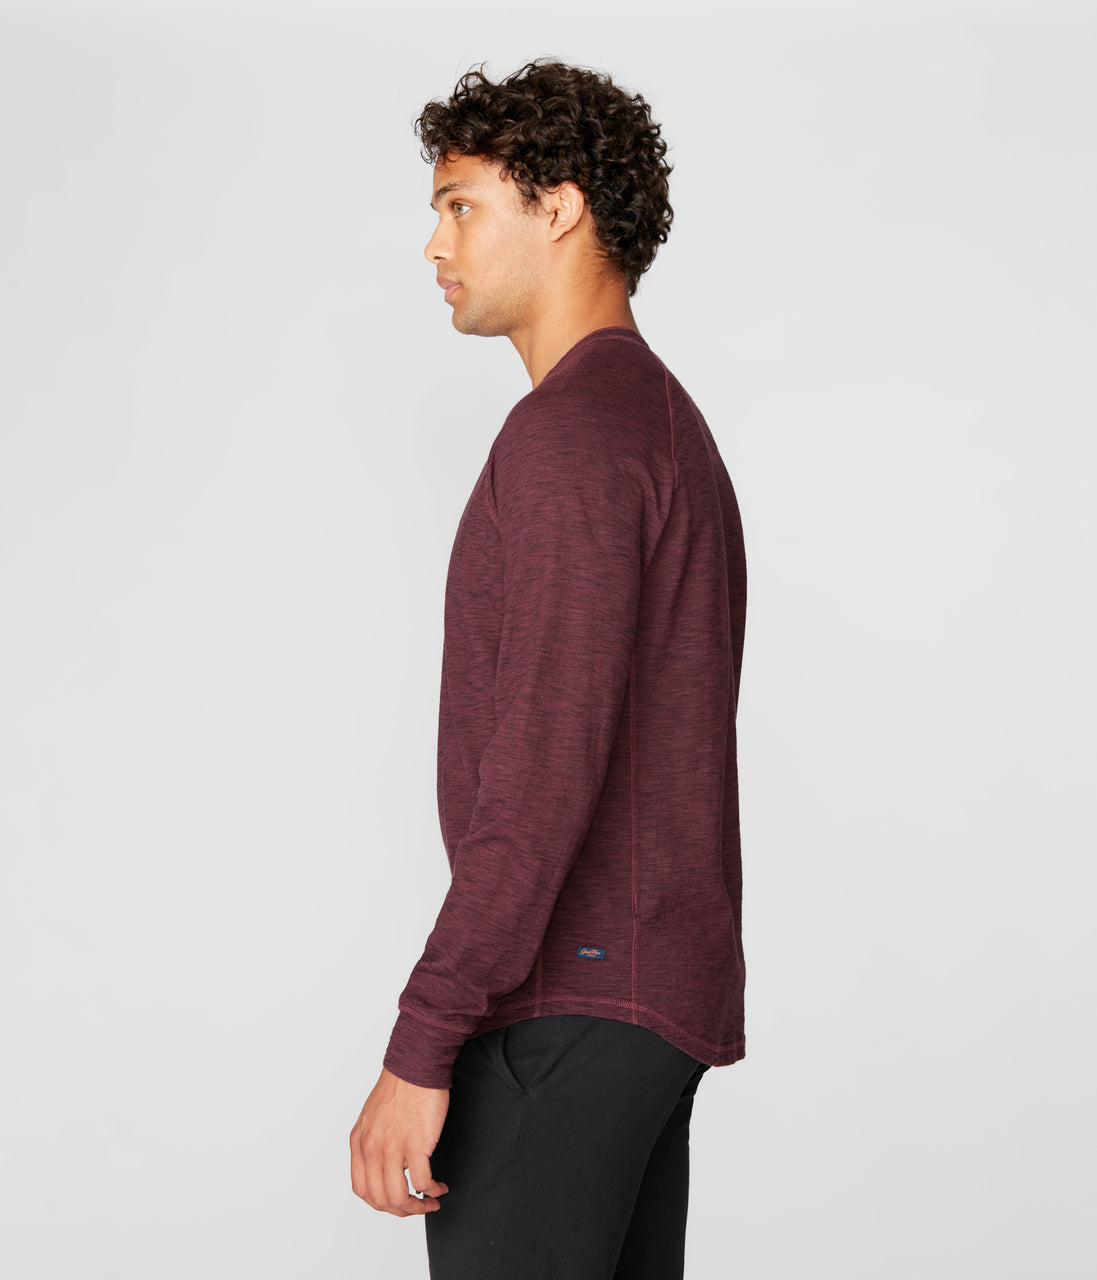 Legend Henley in Black Marl Soft Slub - Wine - Good Man Brand - Legend Henley in Black Marl Soft Slub - Wine